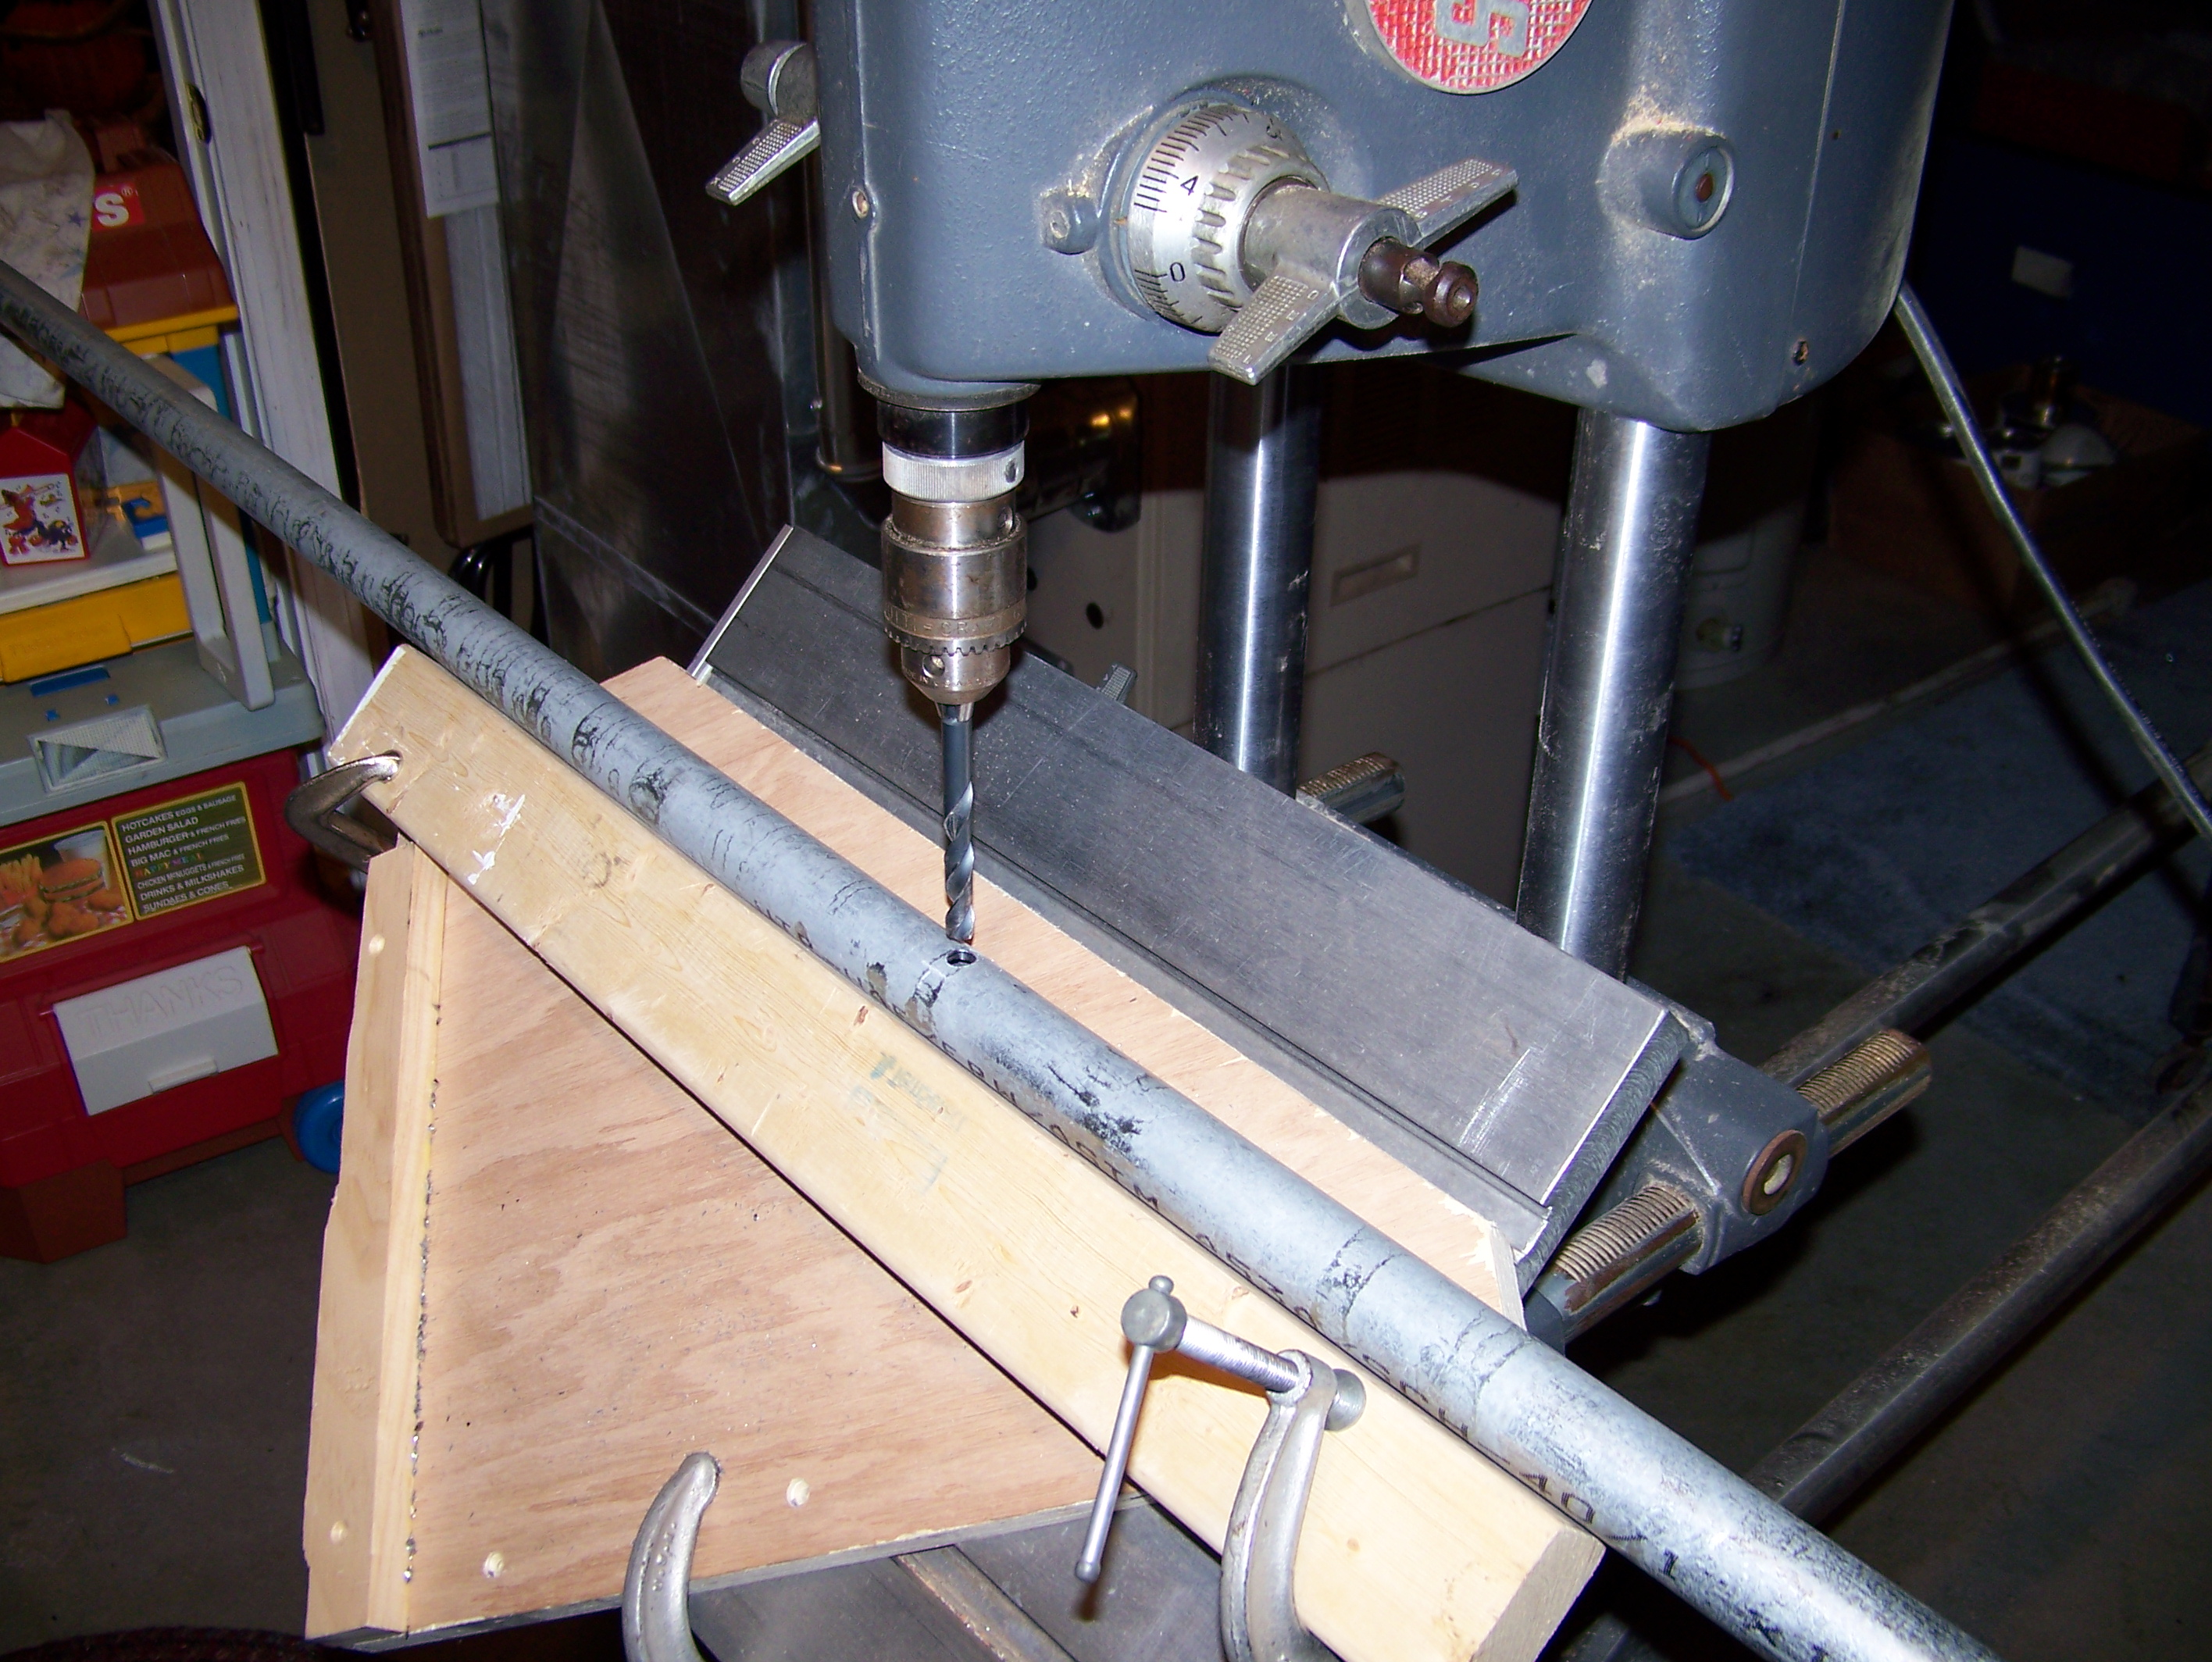 installing a new antenna gap titan dx ke1ri a new england ham my solution was to make a temporary v block out of a two by four clamped to some plywood that was in turn clamped to my drill press table